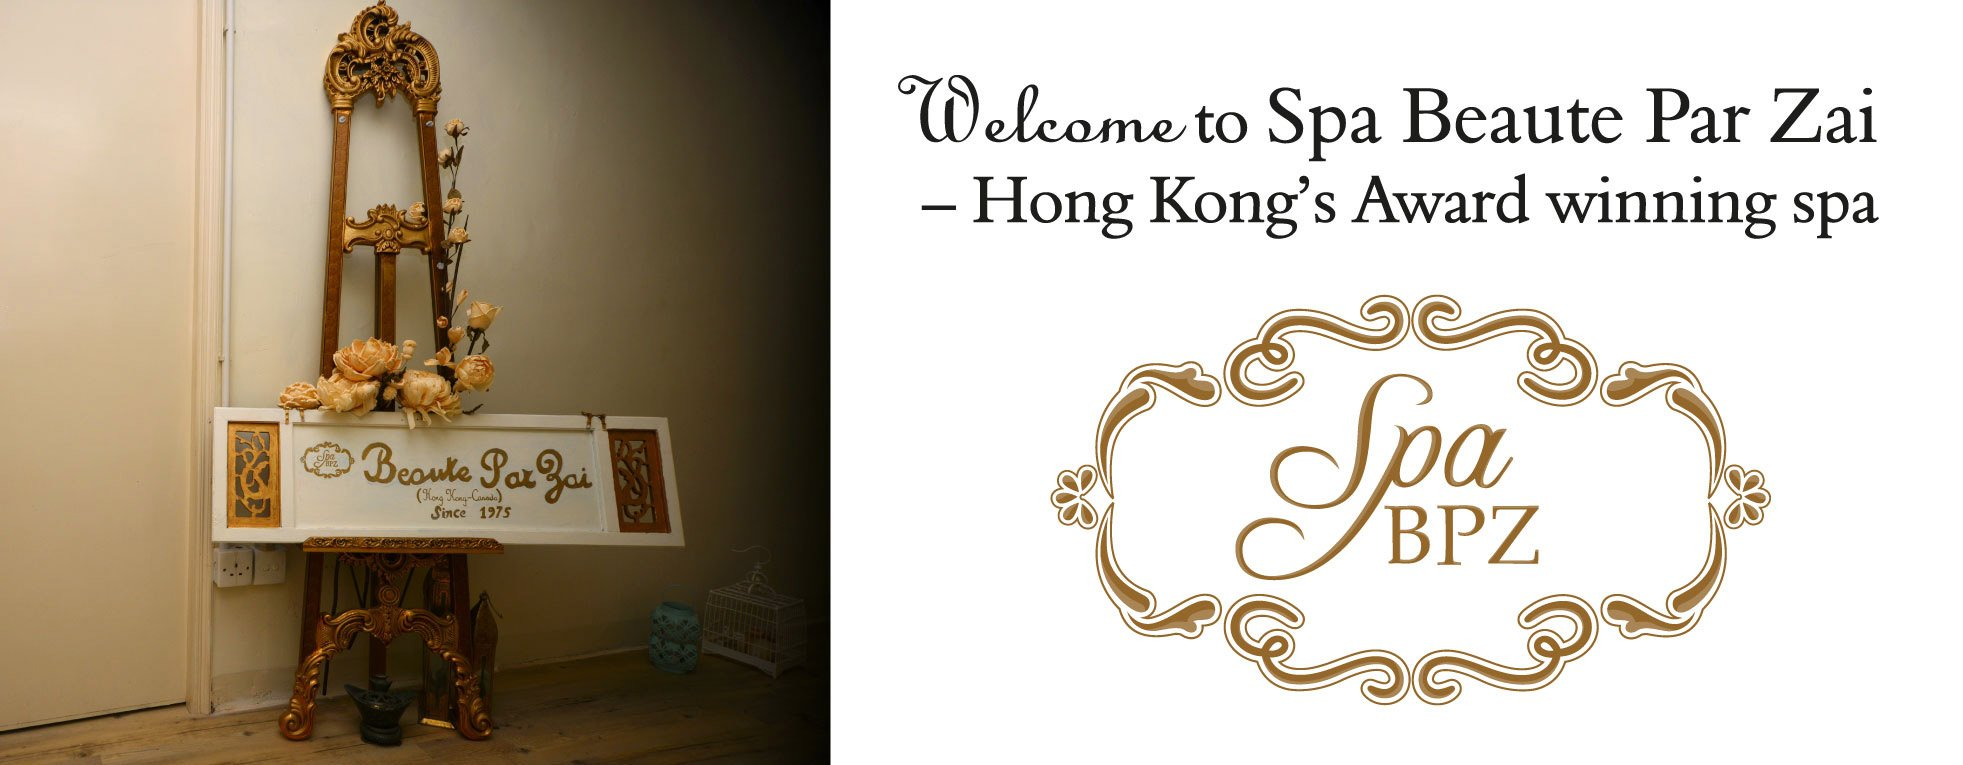 welcome to Spa Beaute Par Zai - Hong Kong